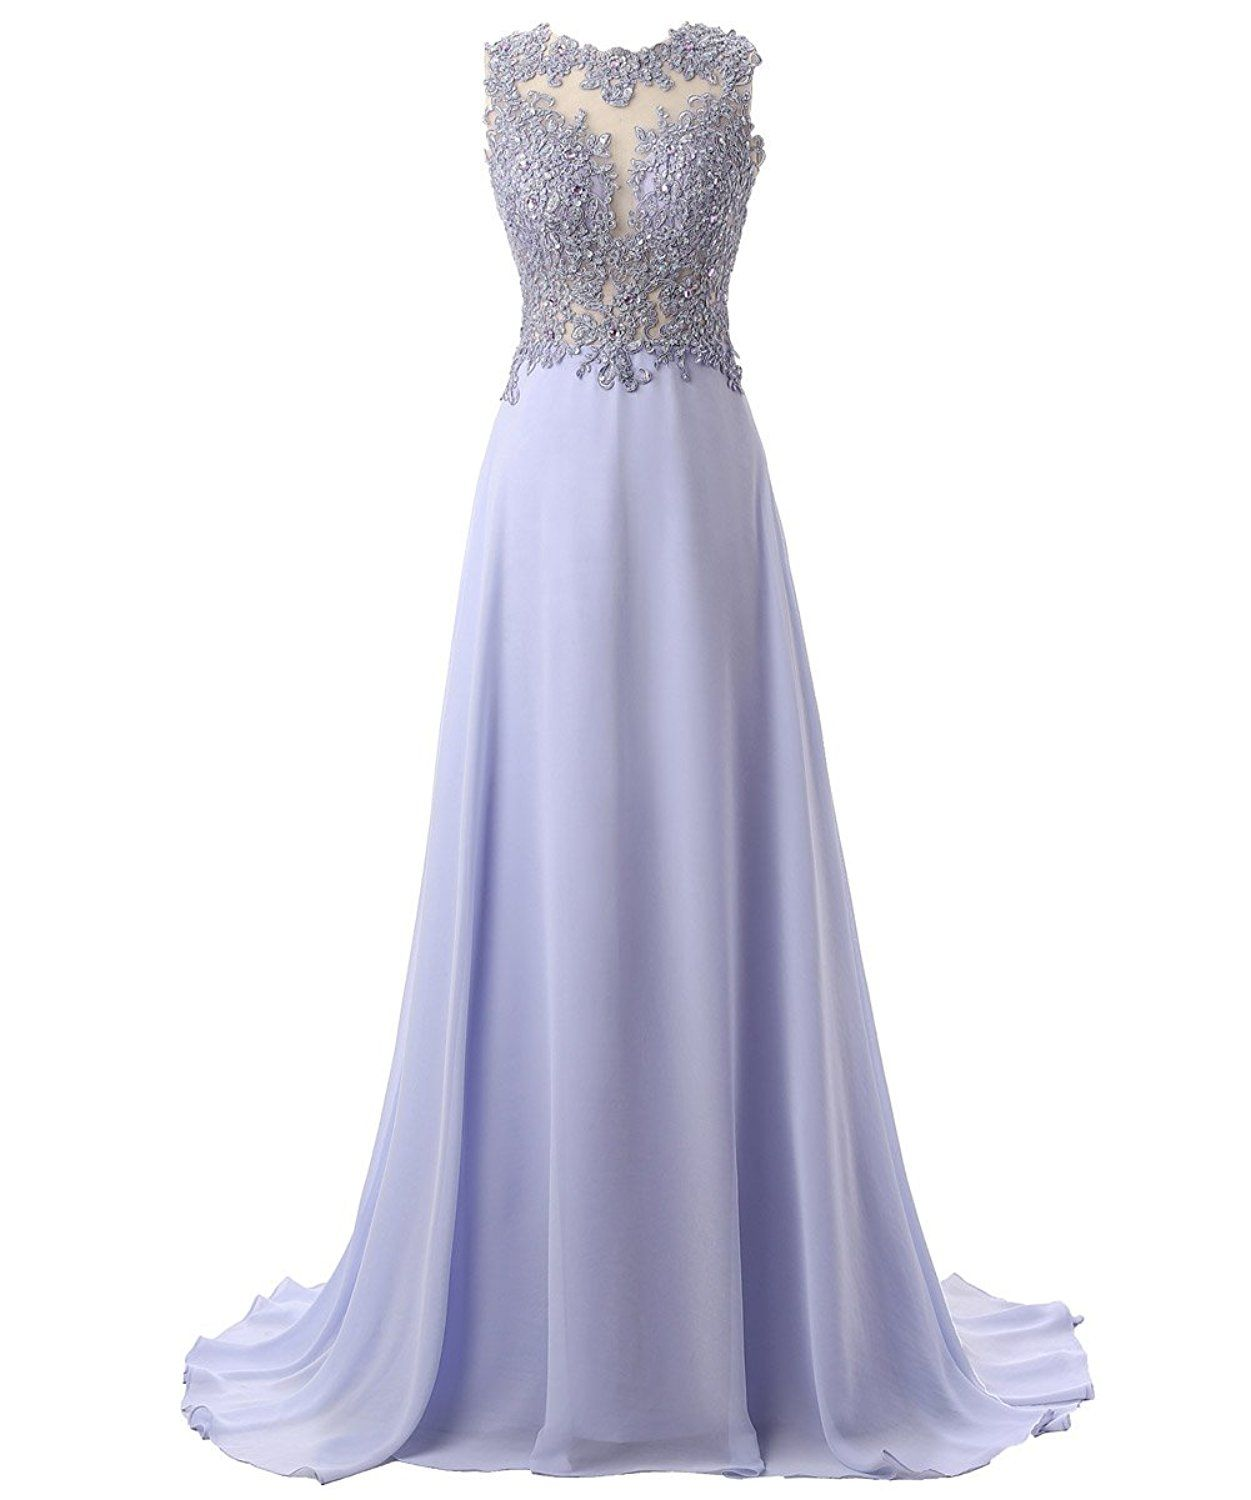 33d0caab76886c Amazon.com: Callmelady Lace Appliqued Prom Dresses 2017 Long Evening Gowns  for Women Formal (Lavender, US2): Clothing